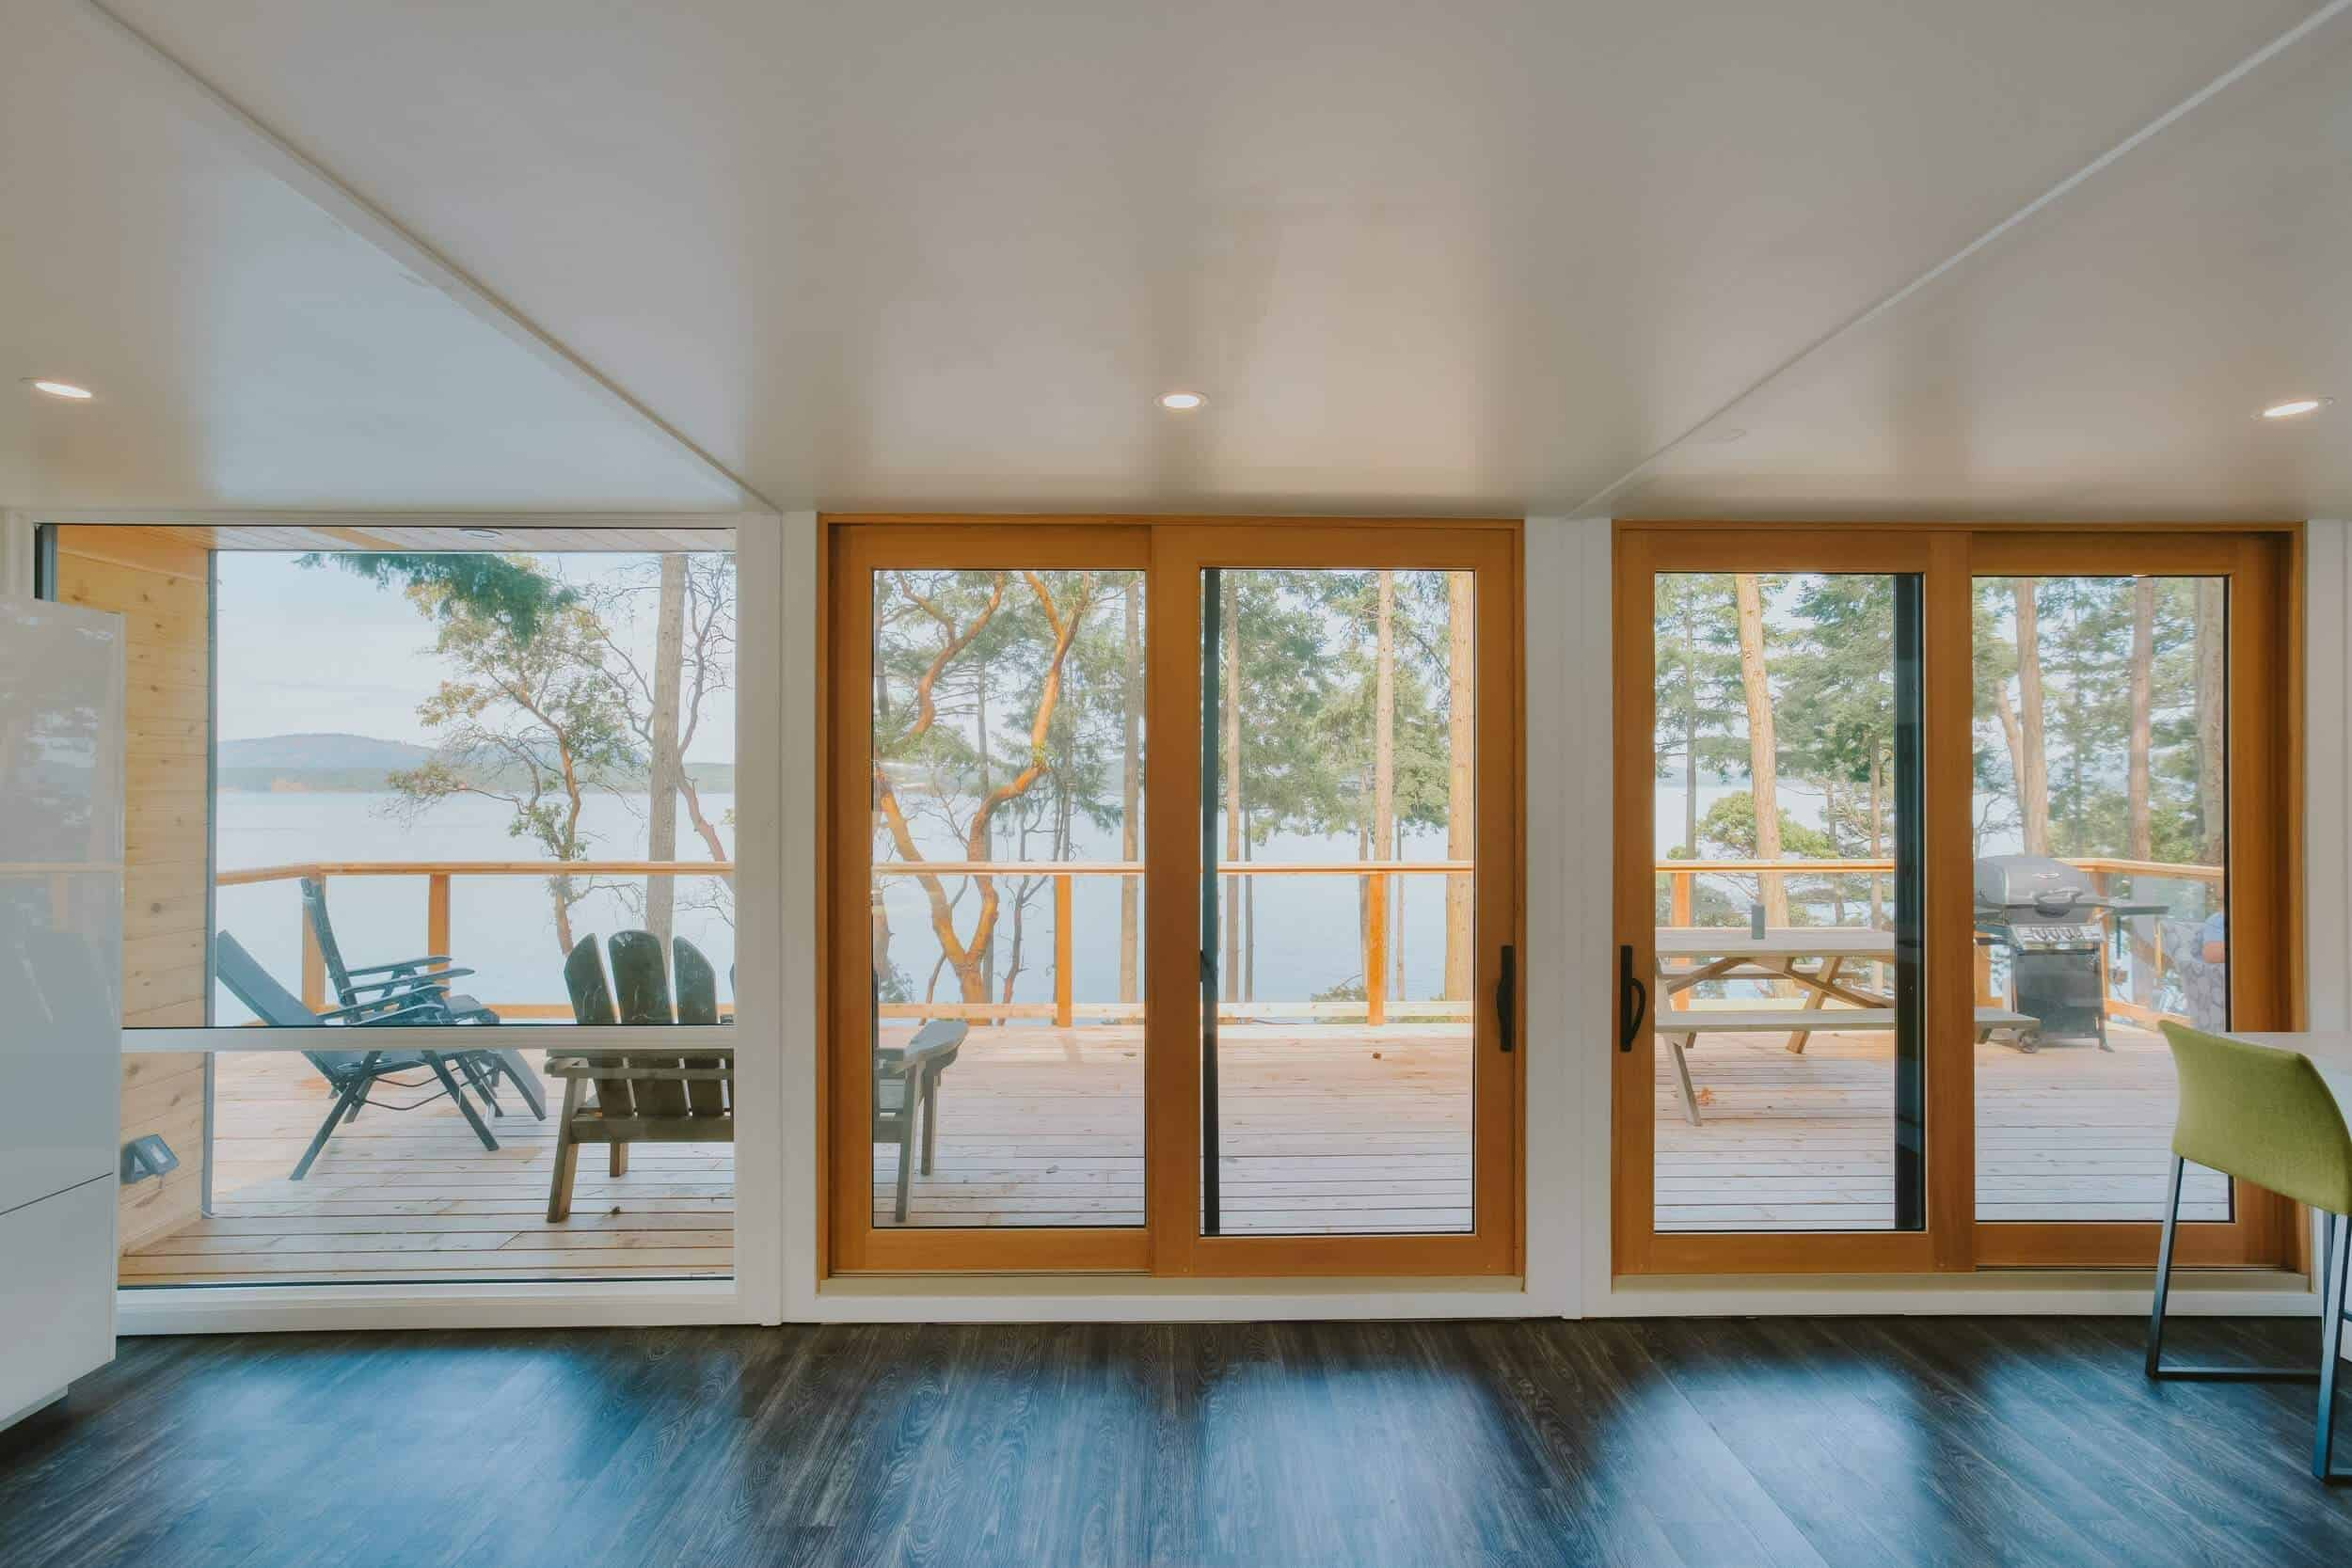 Large windows looking out onto the deck in this container home